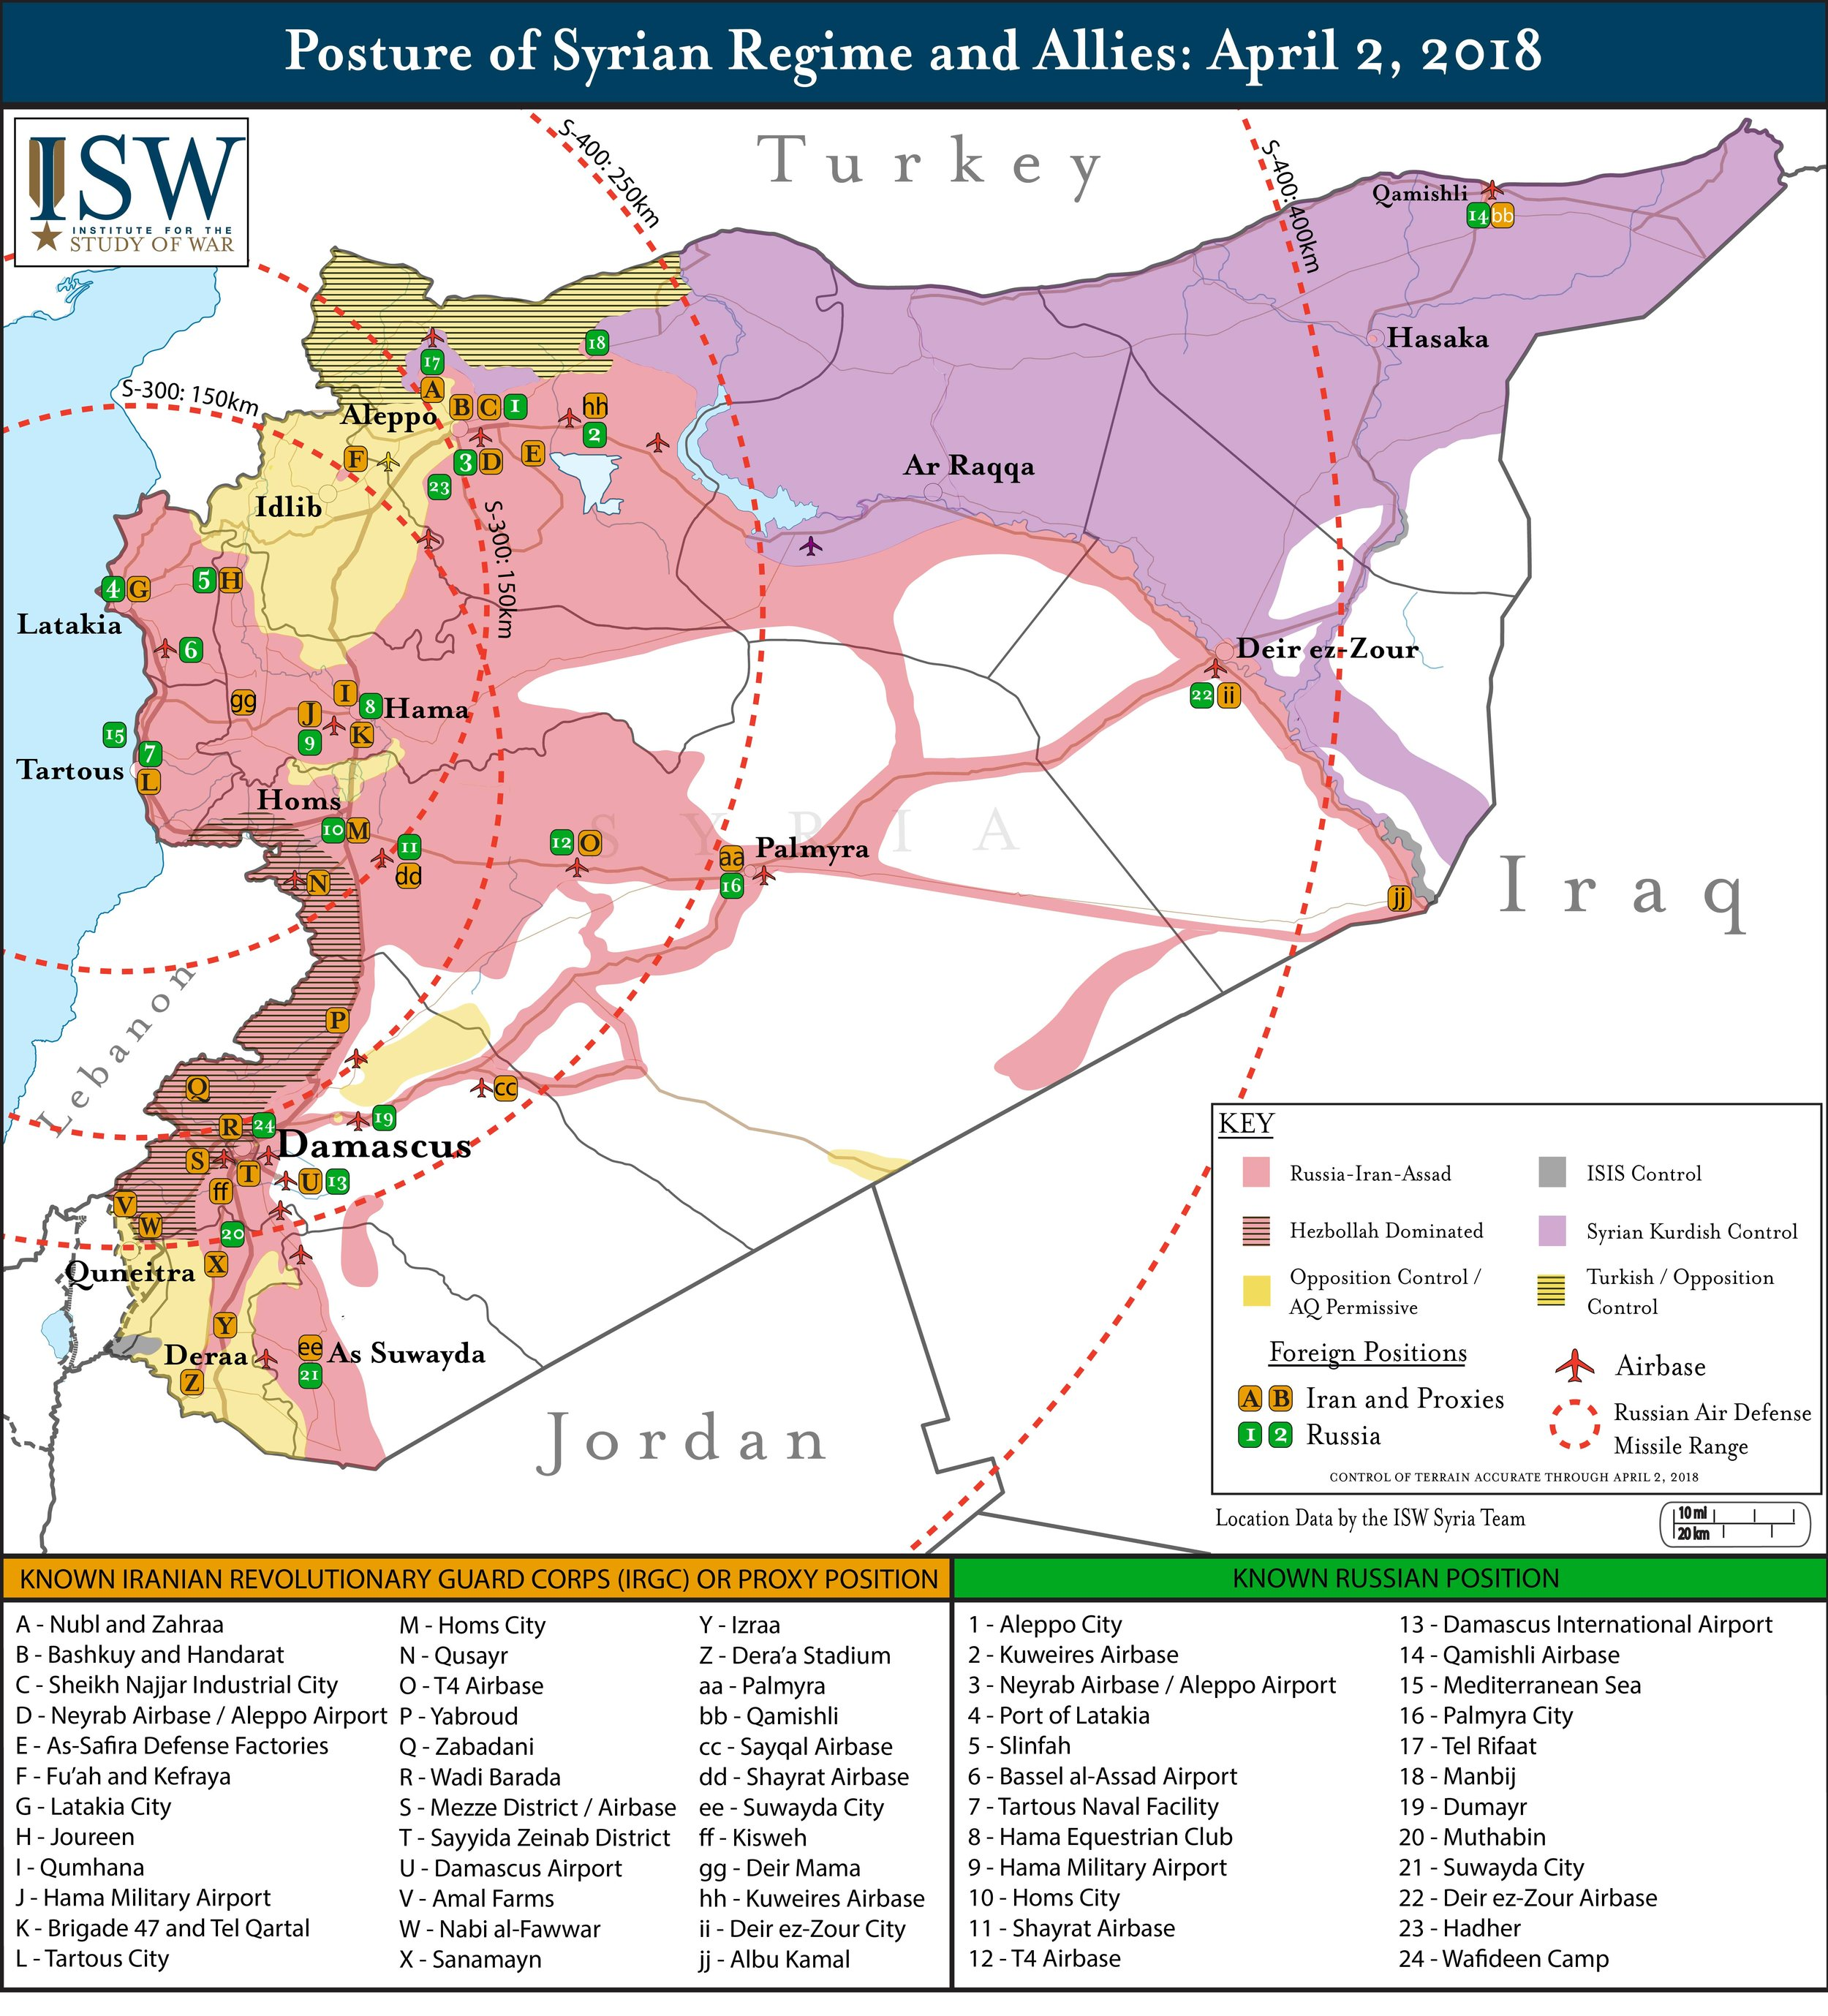 Posture of Syrian Regime and Allies, as of April 2, 2018 ( Institute for the Study of War )